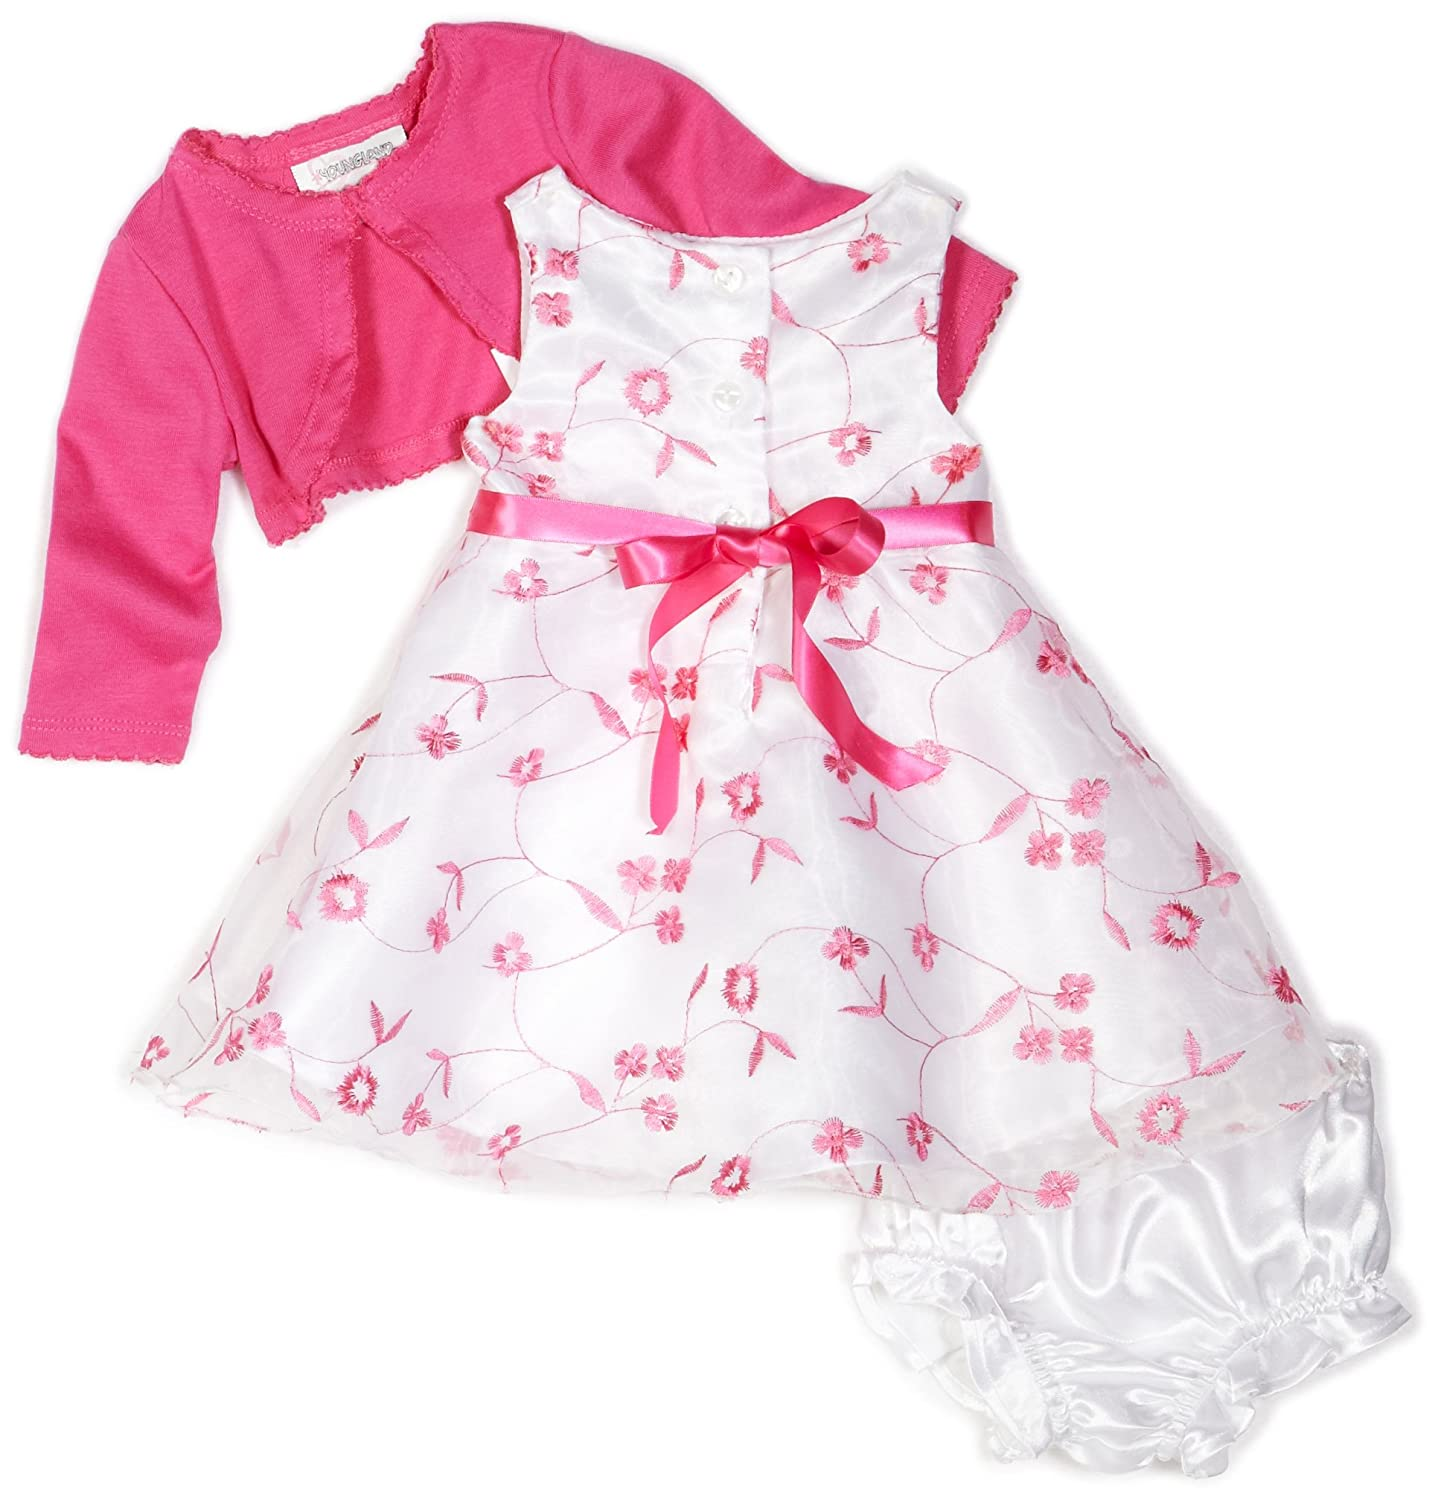 bc18fc0b3 Amazon.com  Youngland Baby Girls  3 Piece Embroidery Dress